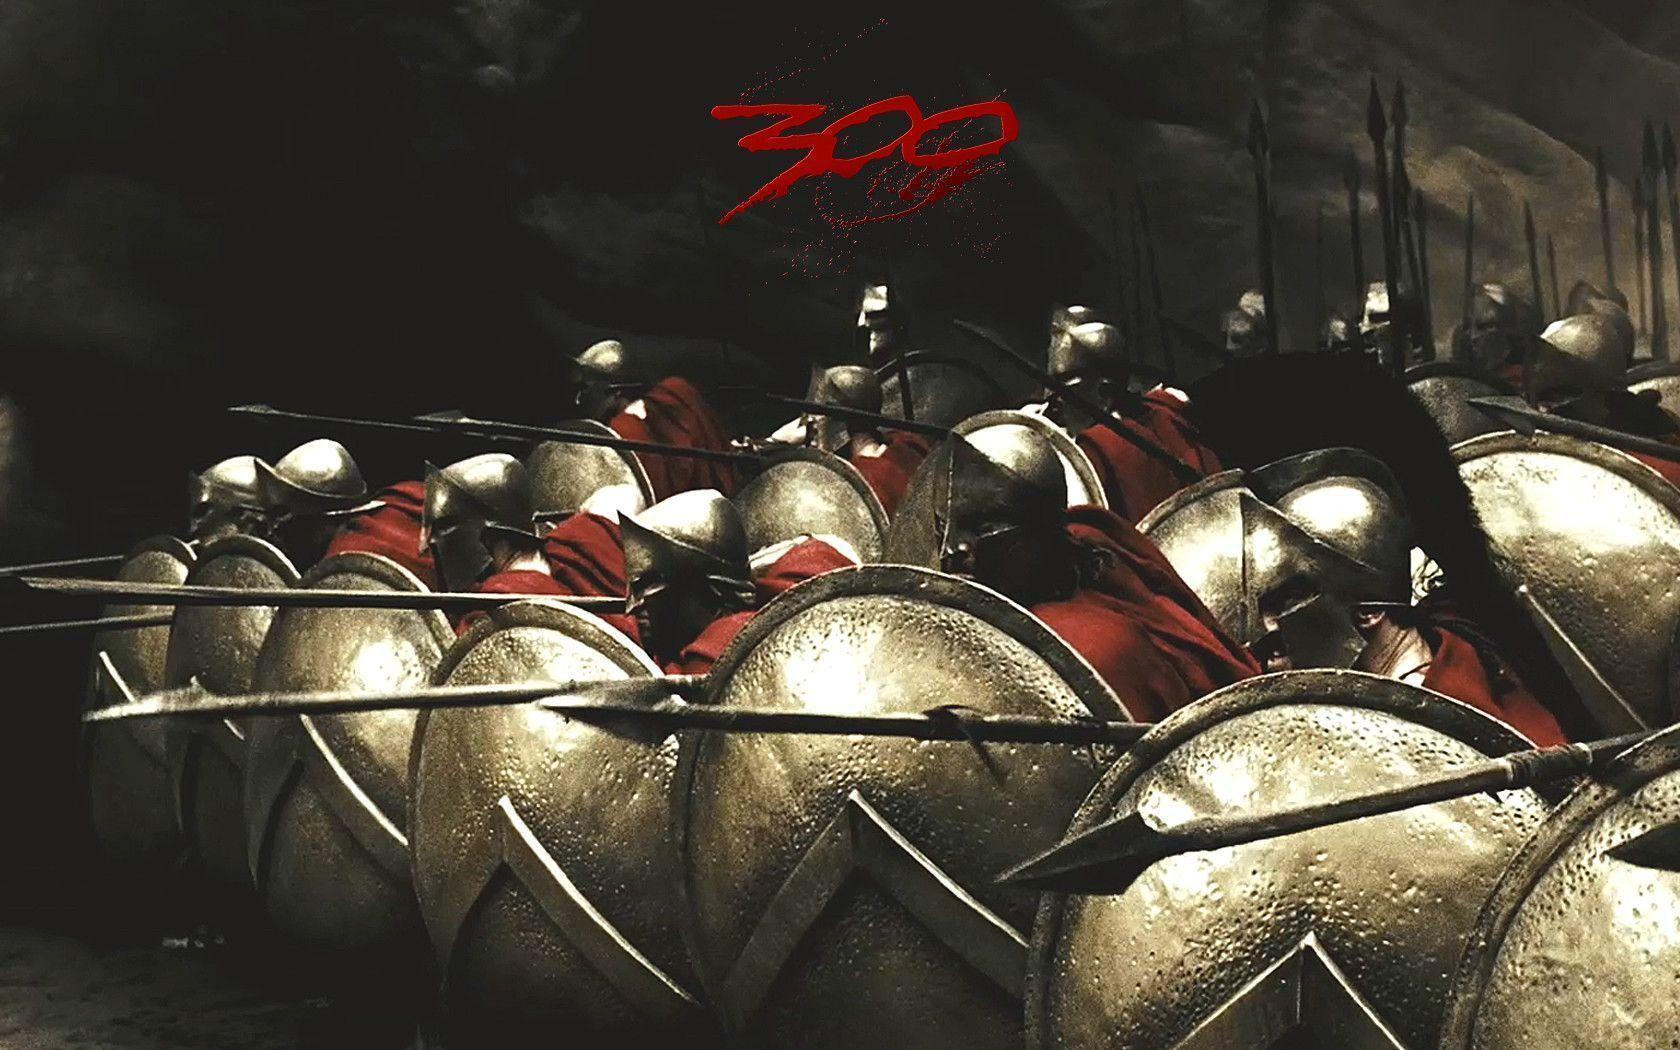 300 Spartans Pictures 25248 Download Free HD Desktop Backgrounds